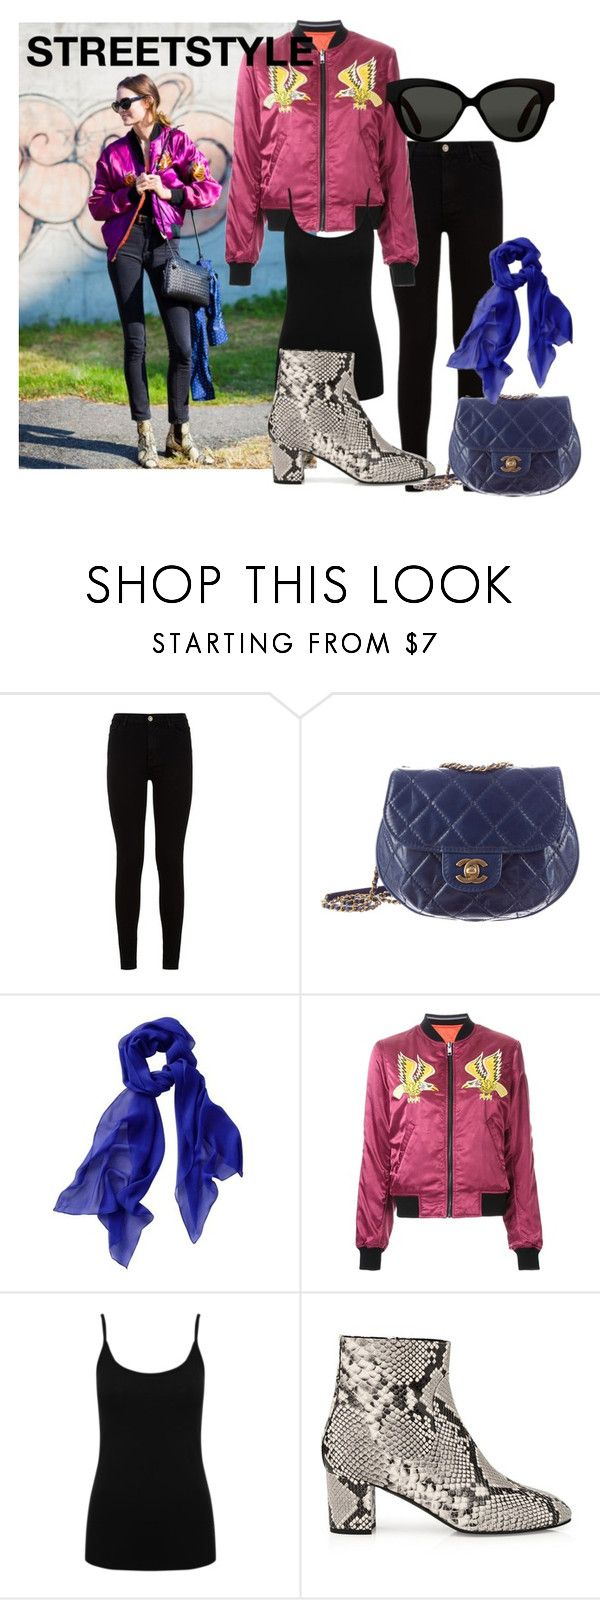 """""""Streetstyle #46"""" by romi-kella on Polyvore featuring 7 For All Mankind, Chanel, Diesel, M&Co, L.K.Bennett and Linda Farrow"""